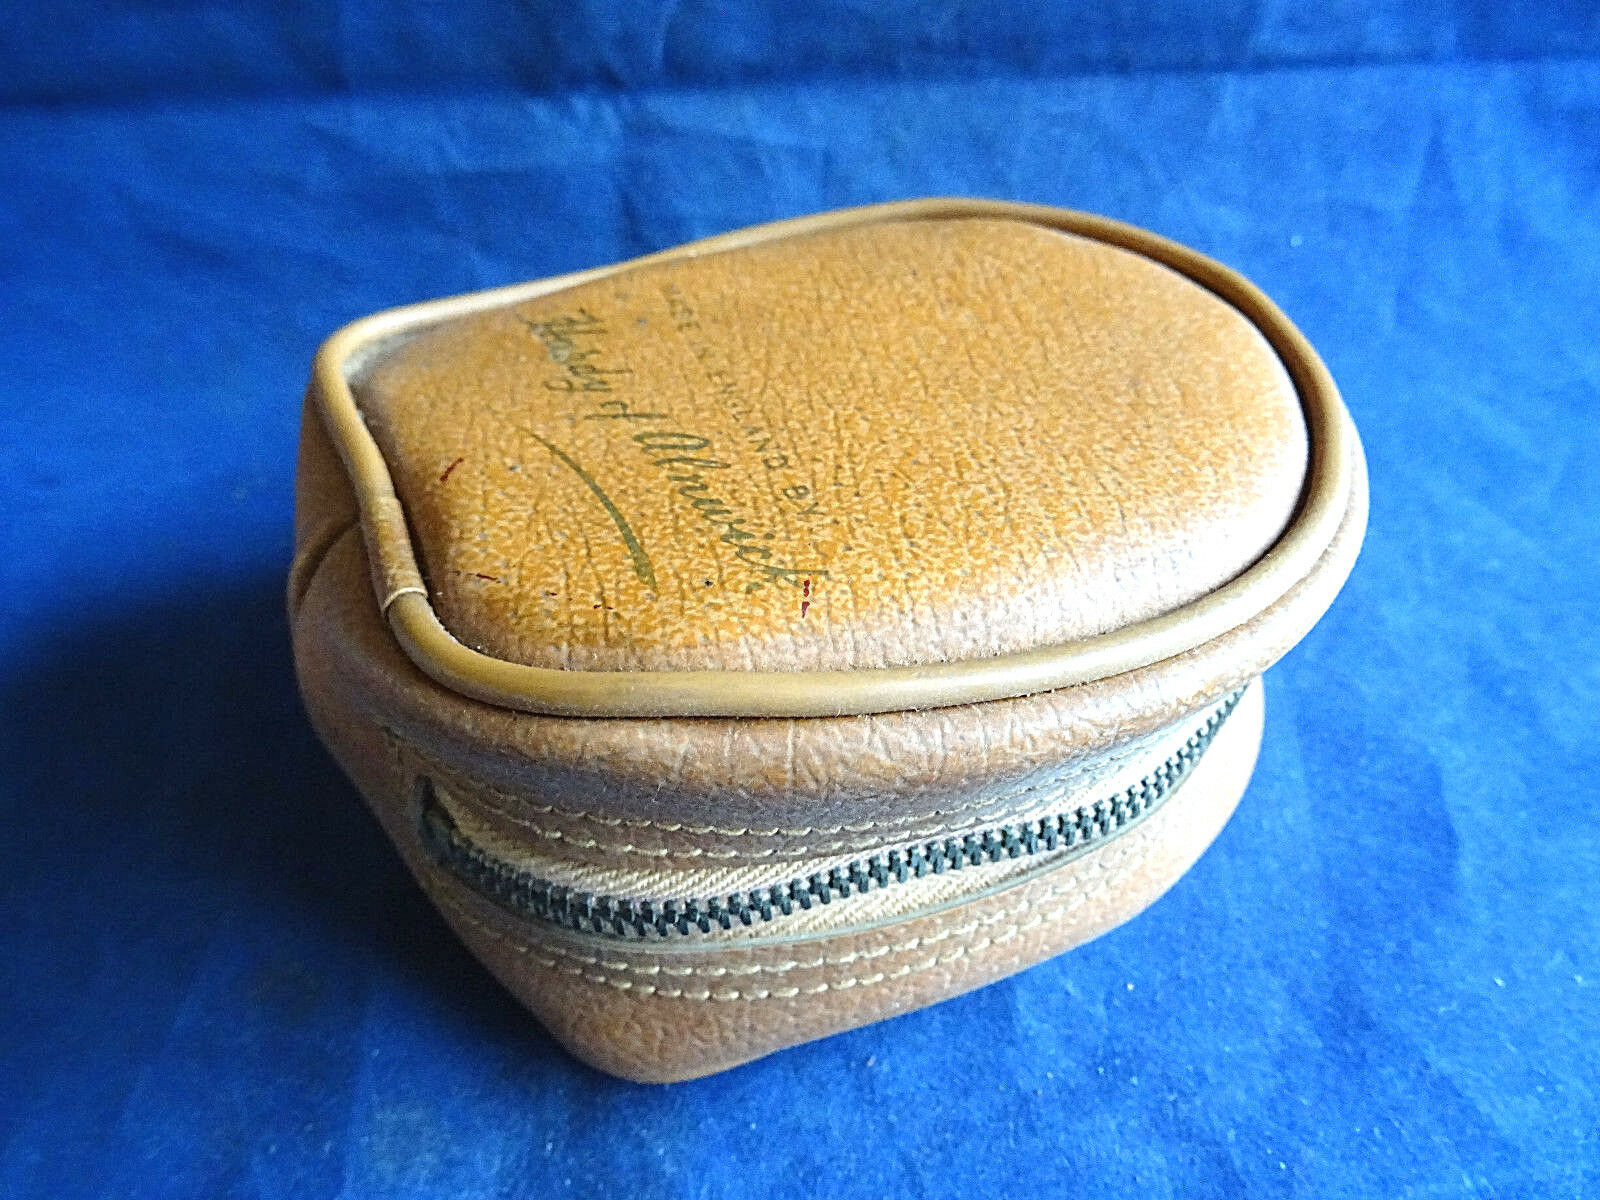 A VERY GOOD HARDY 1950'S LEATHER FISHING REEL CASE